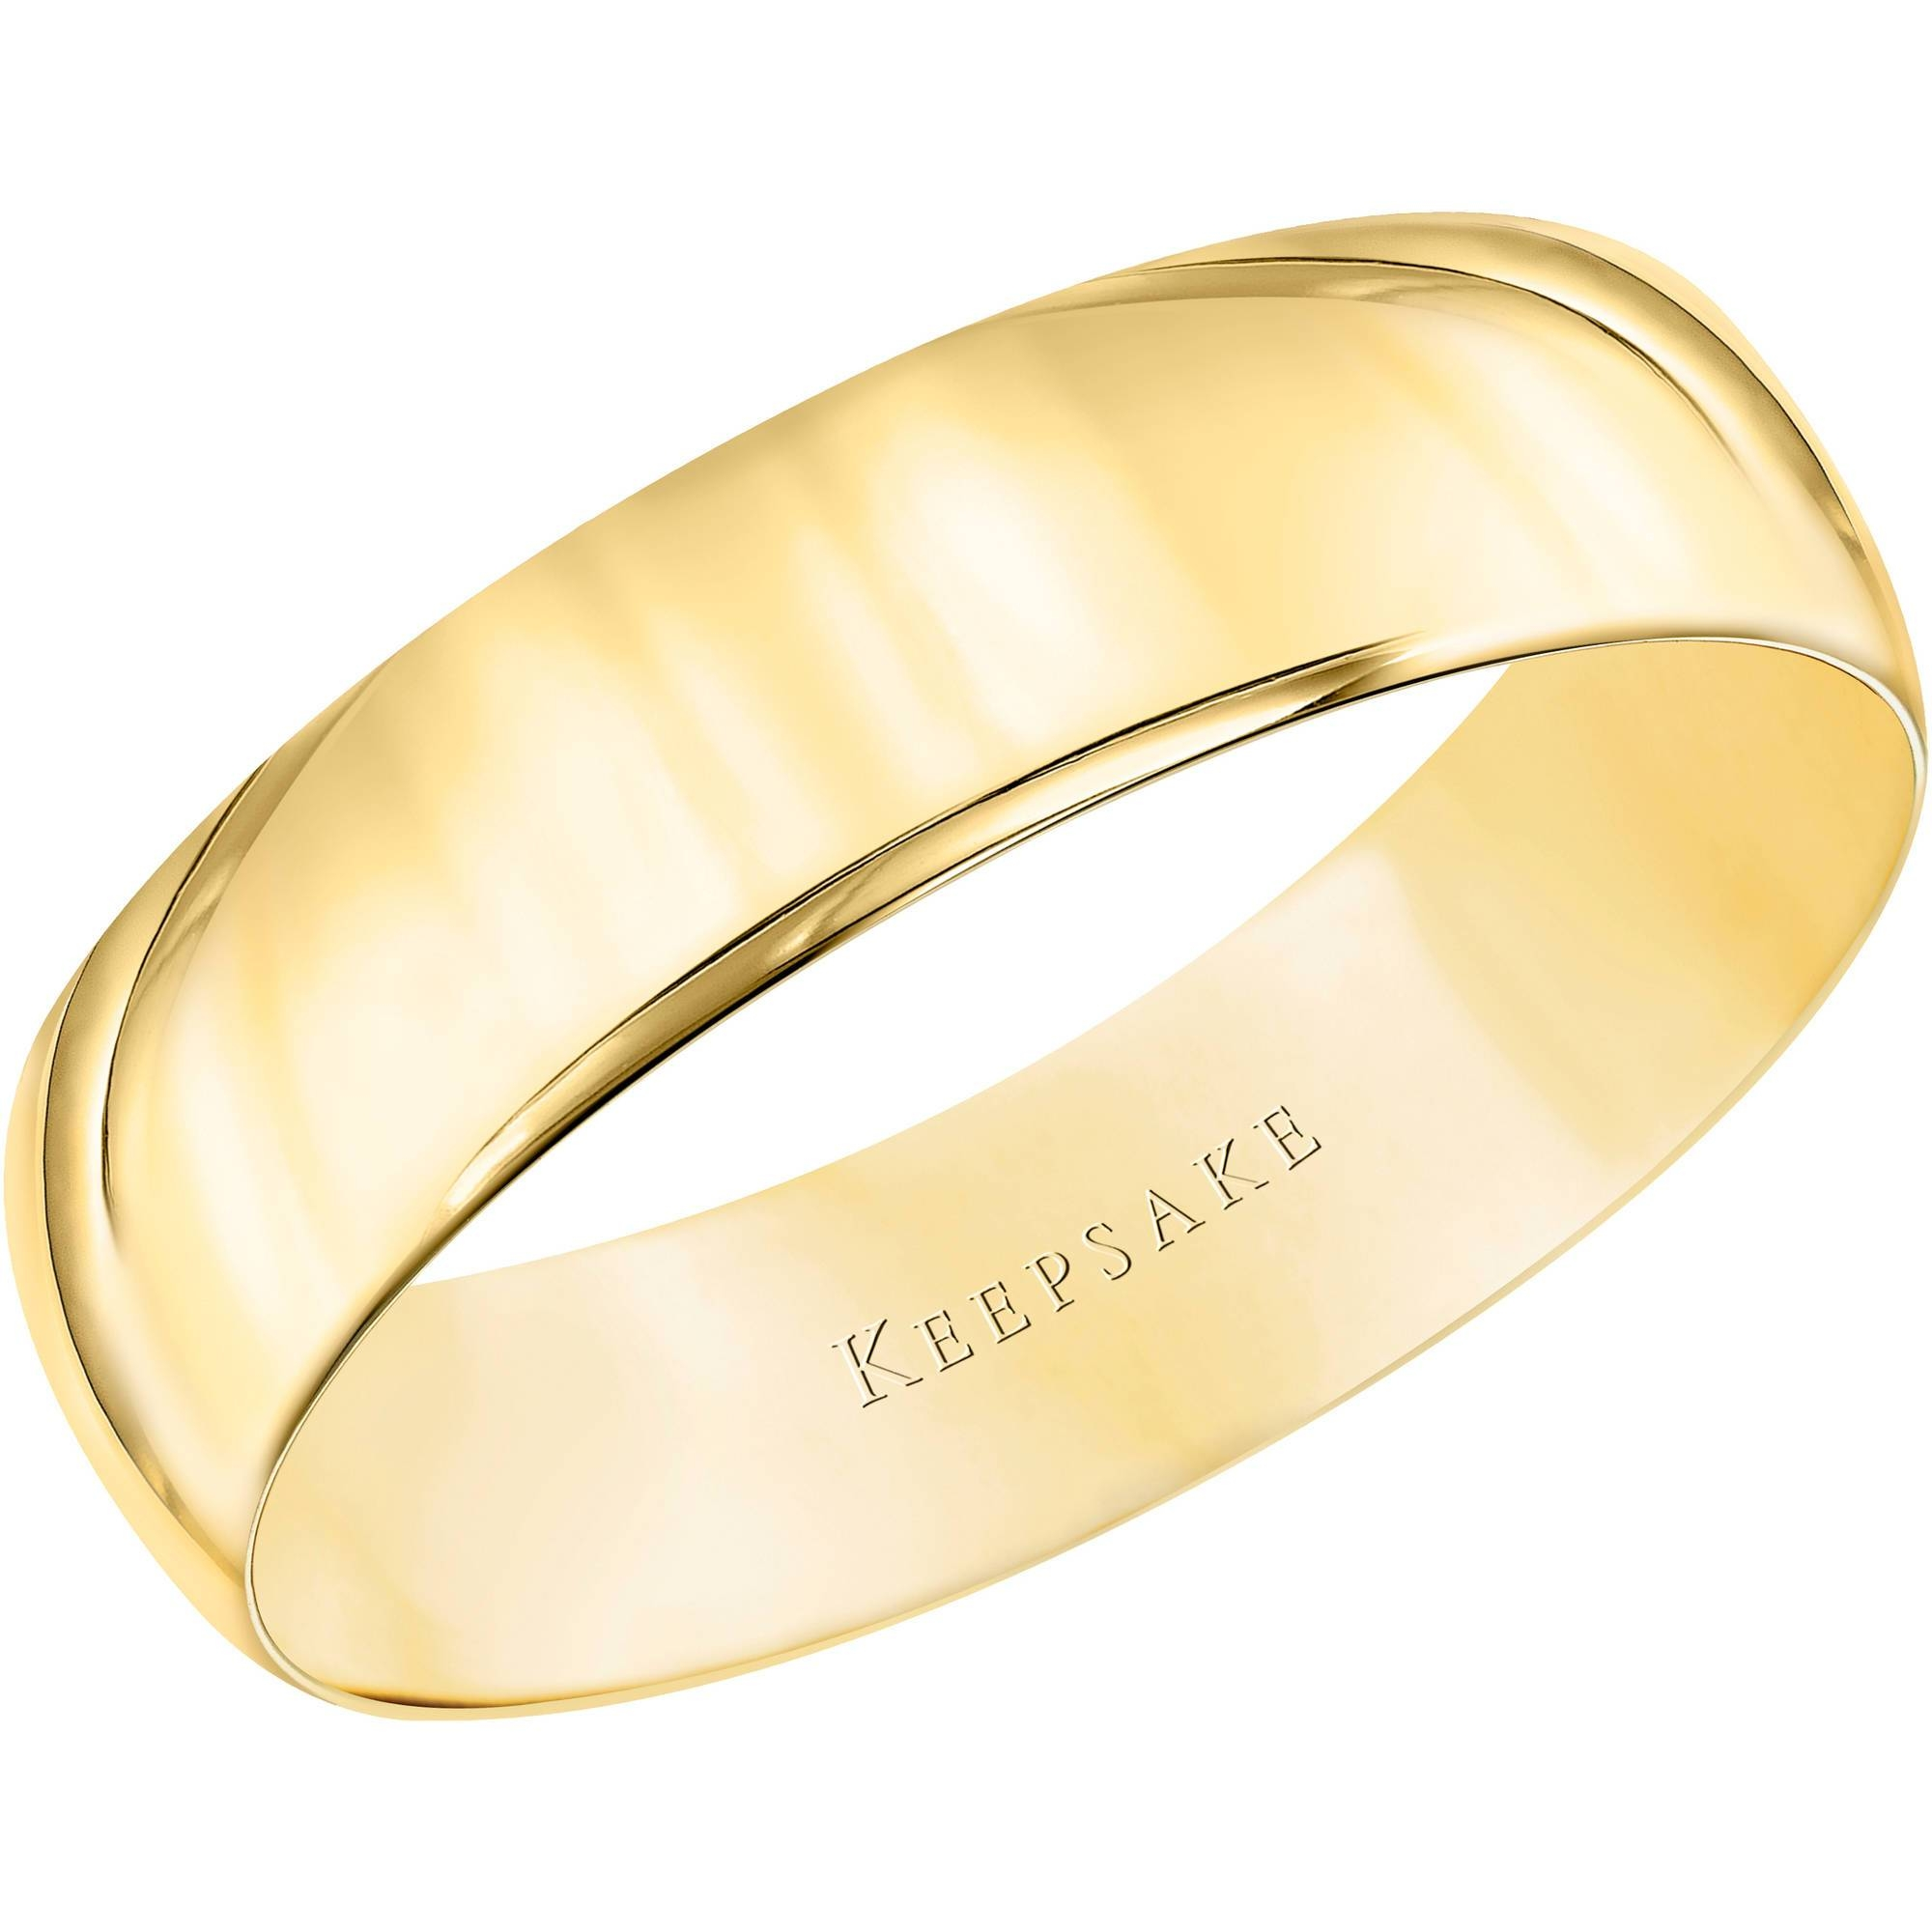 Keepsake 10Kt Yellow Gold Wedding Band With High Polish Finish Throughout 14 Karat Gold Wedding Bands (View 9 of 15)